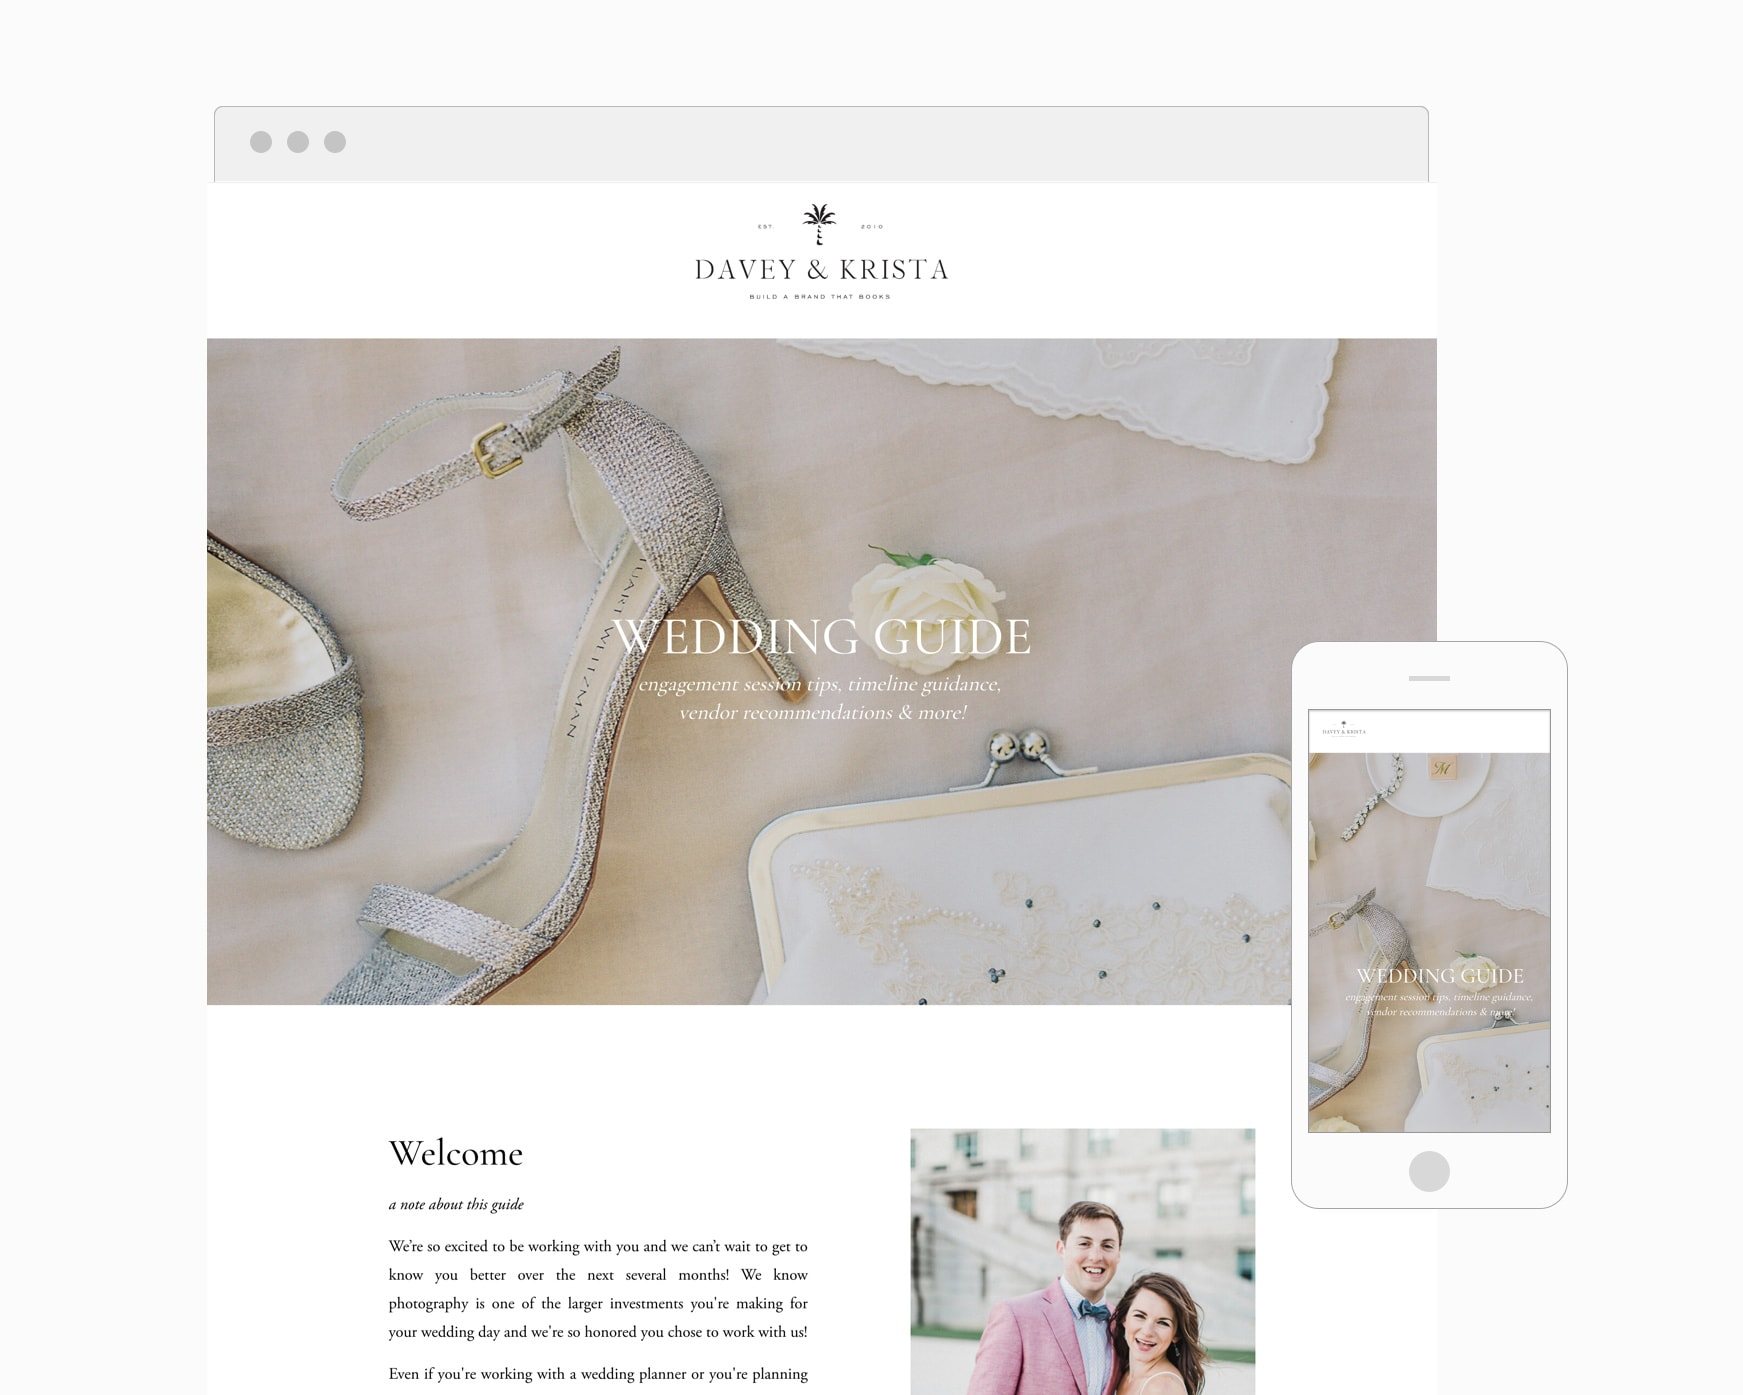 Wedding Guide (Squarespace)